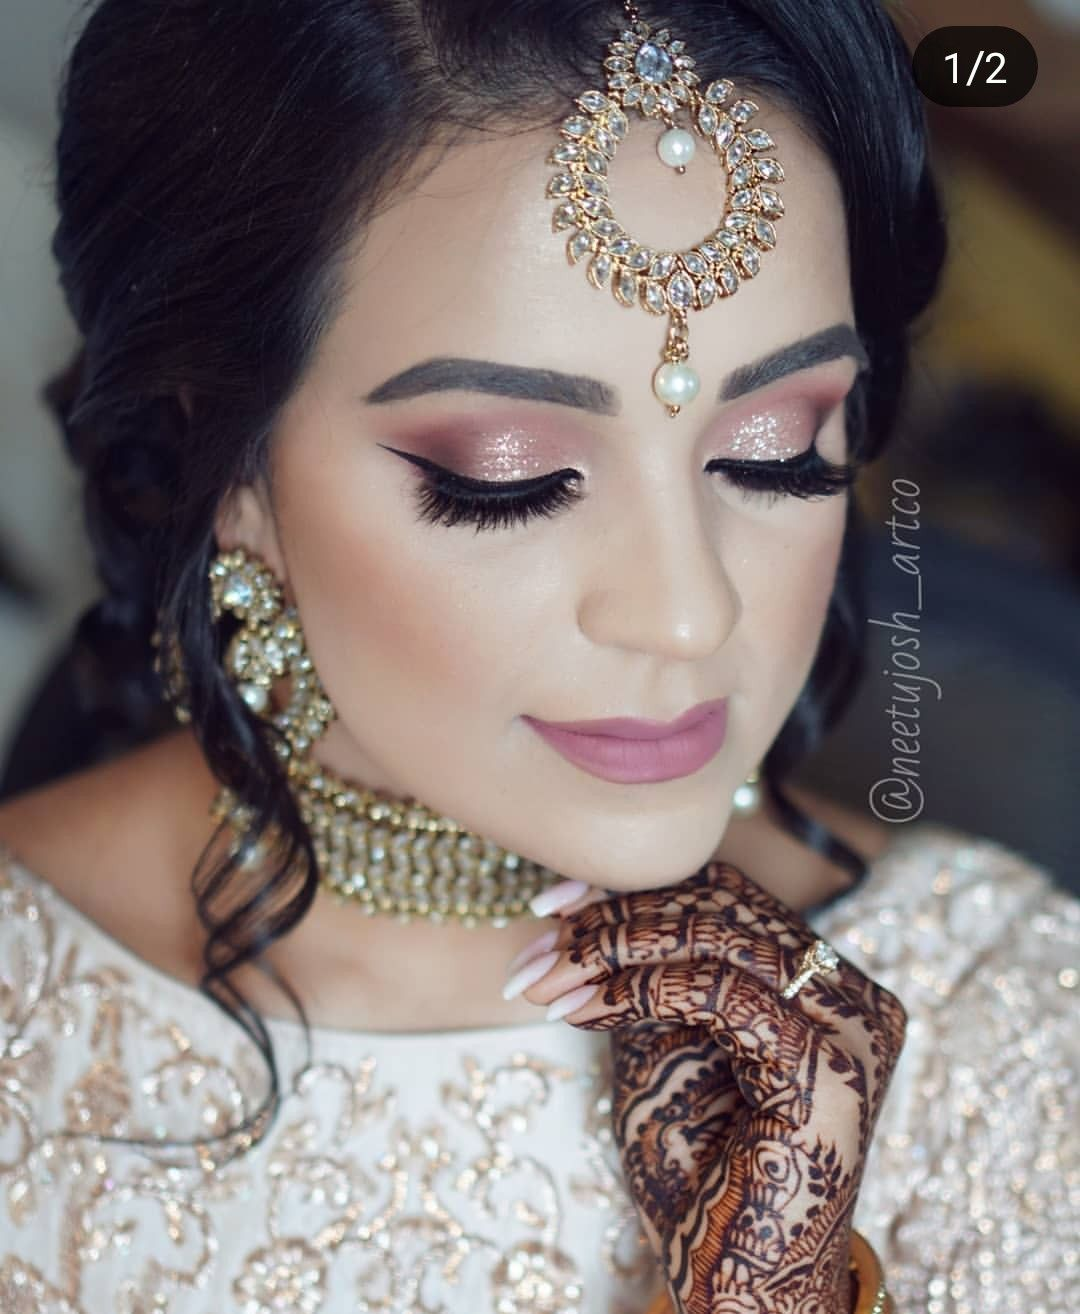 @shikachand #Over40BeautyTips Lehenga Reception, Indian Reception Outfit, Wedding Reception Outfit, Indian